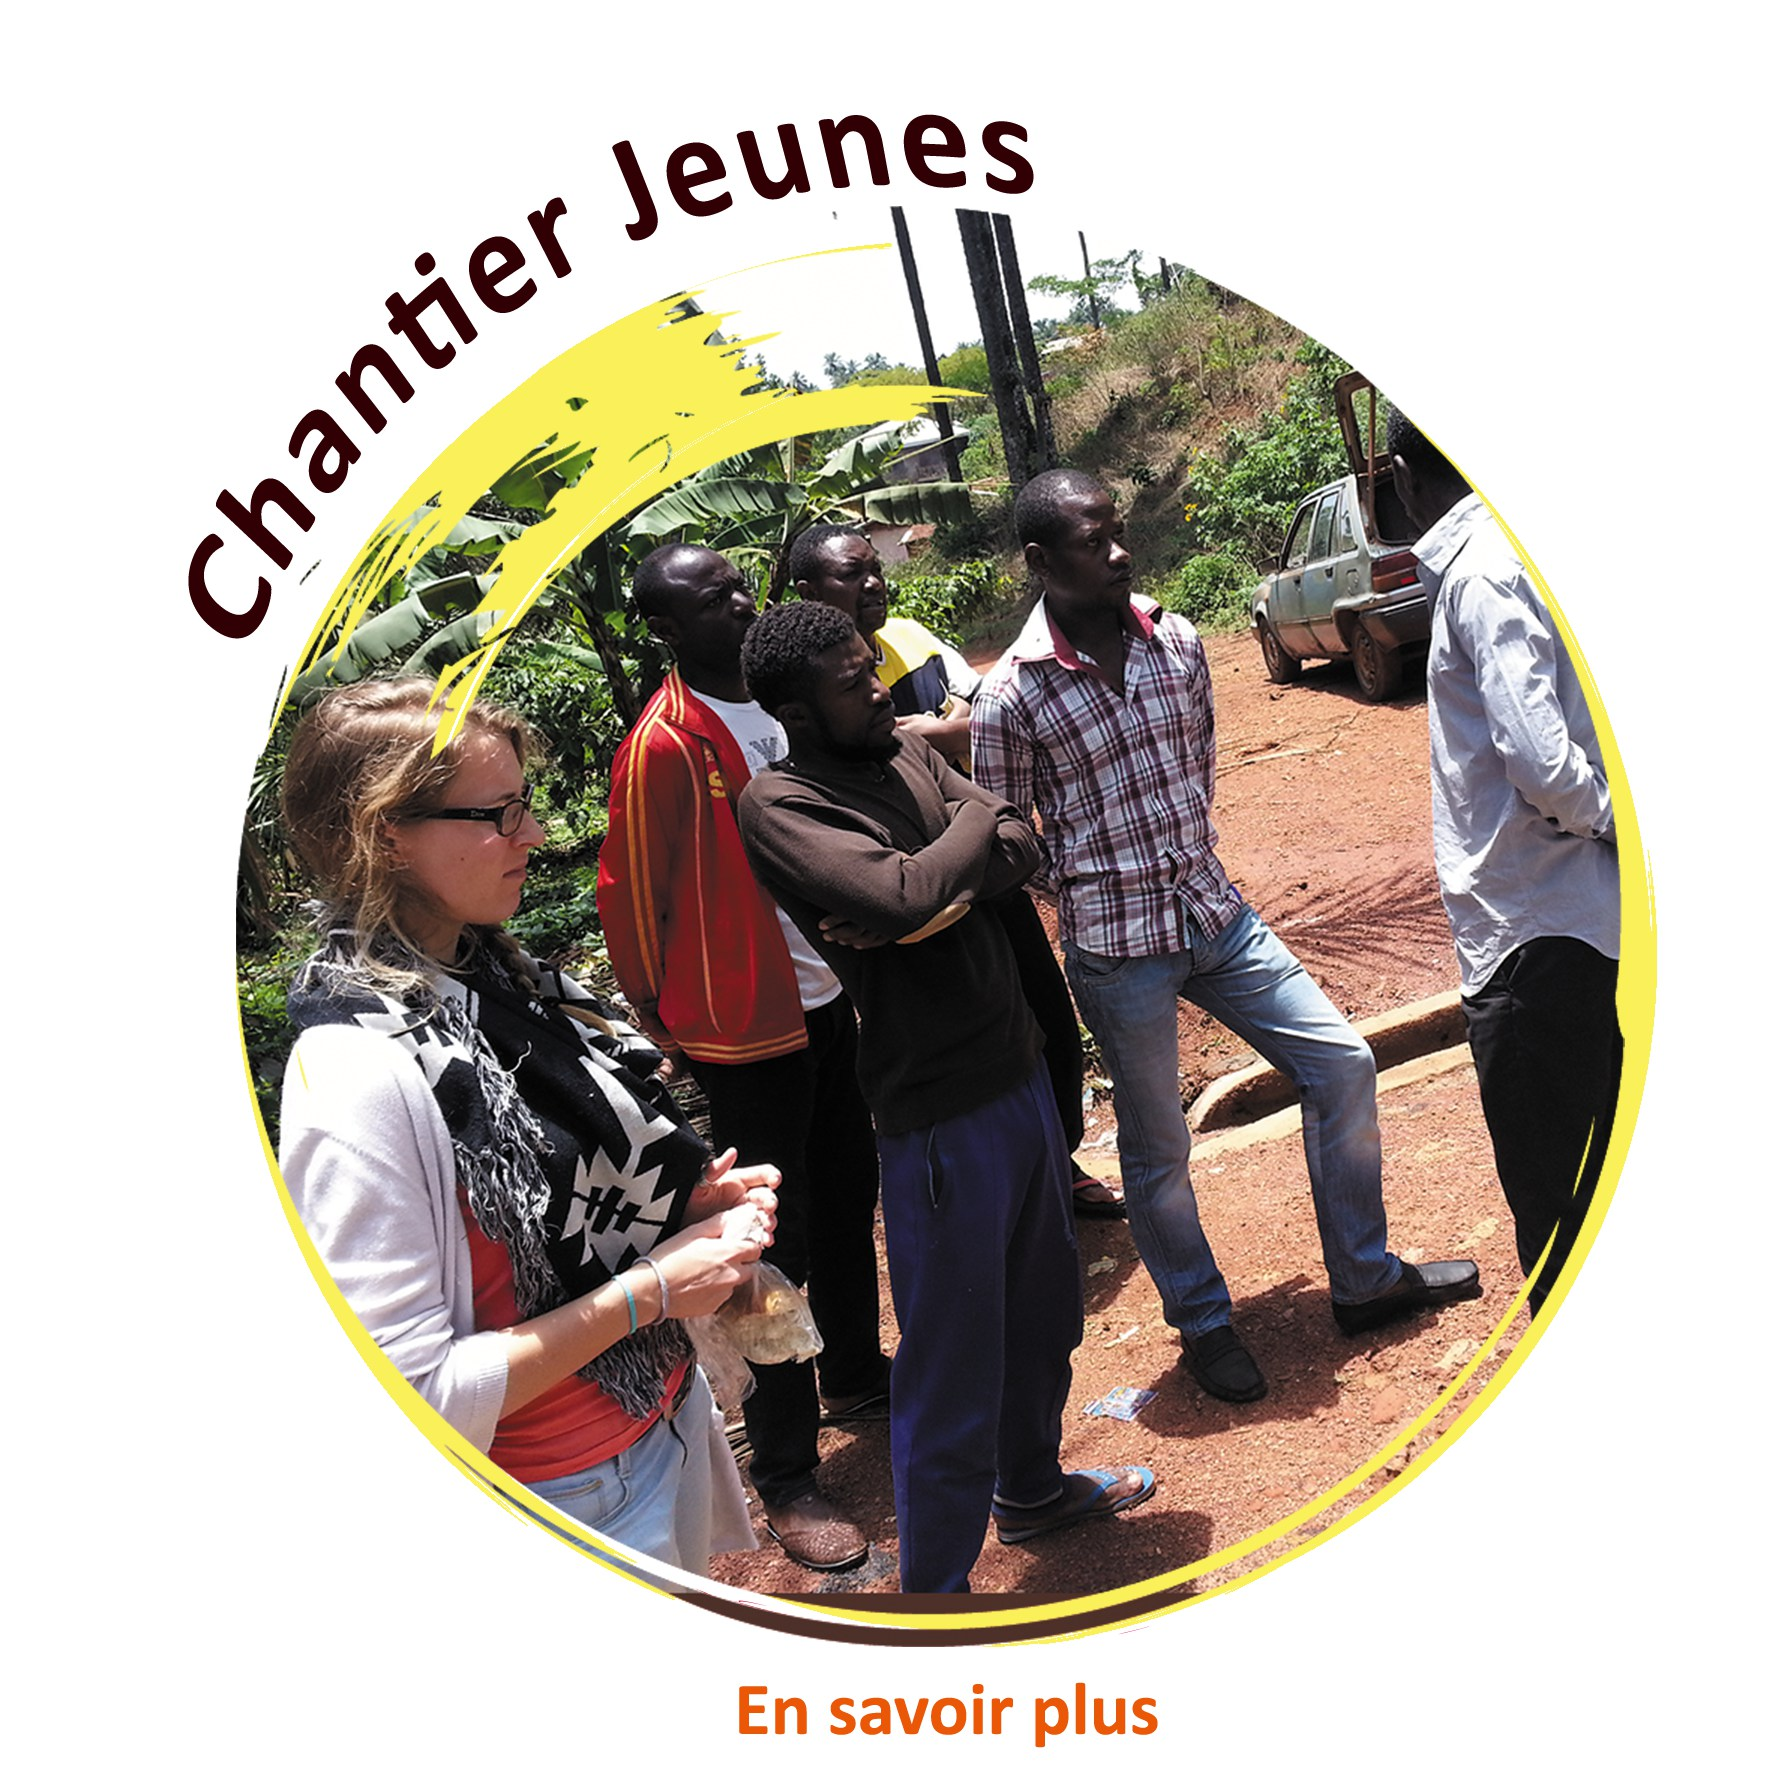 chantier jeunes site internet ConvertImage